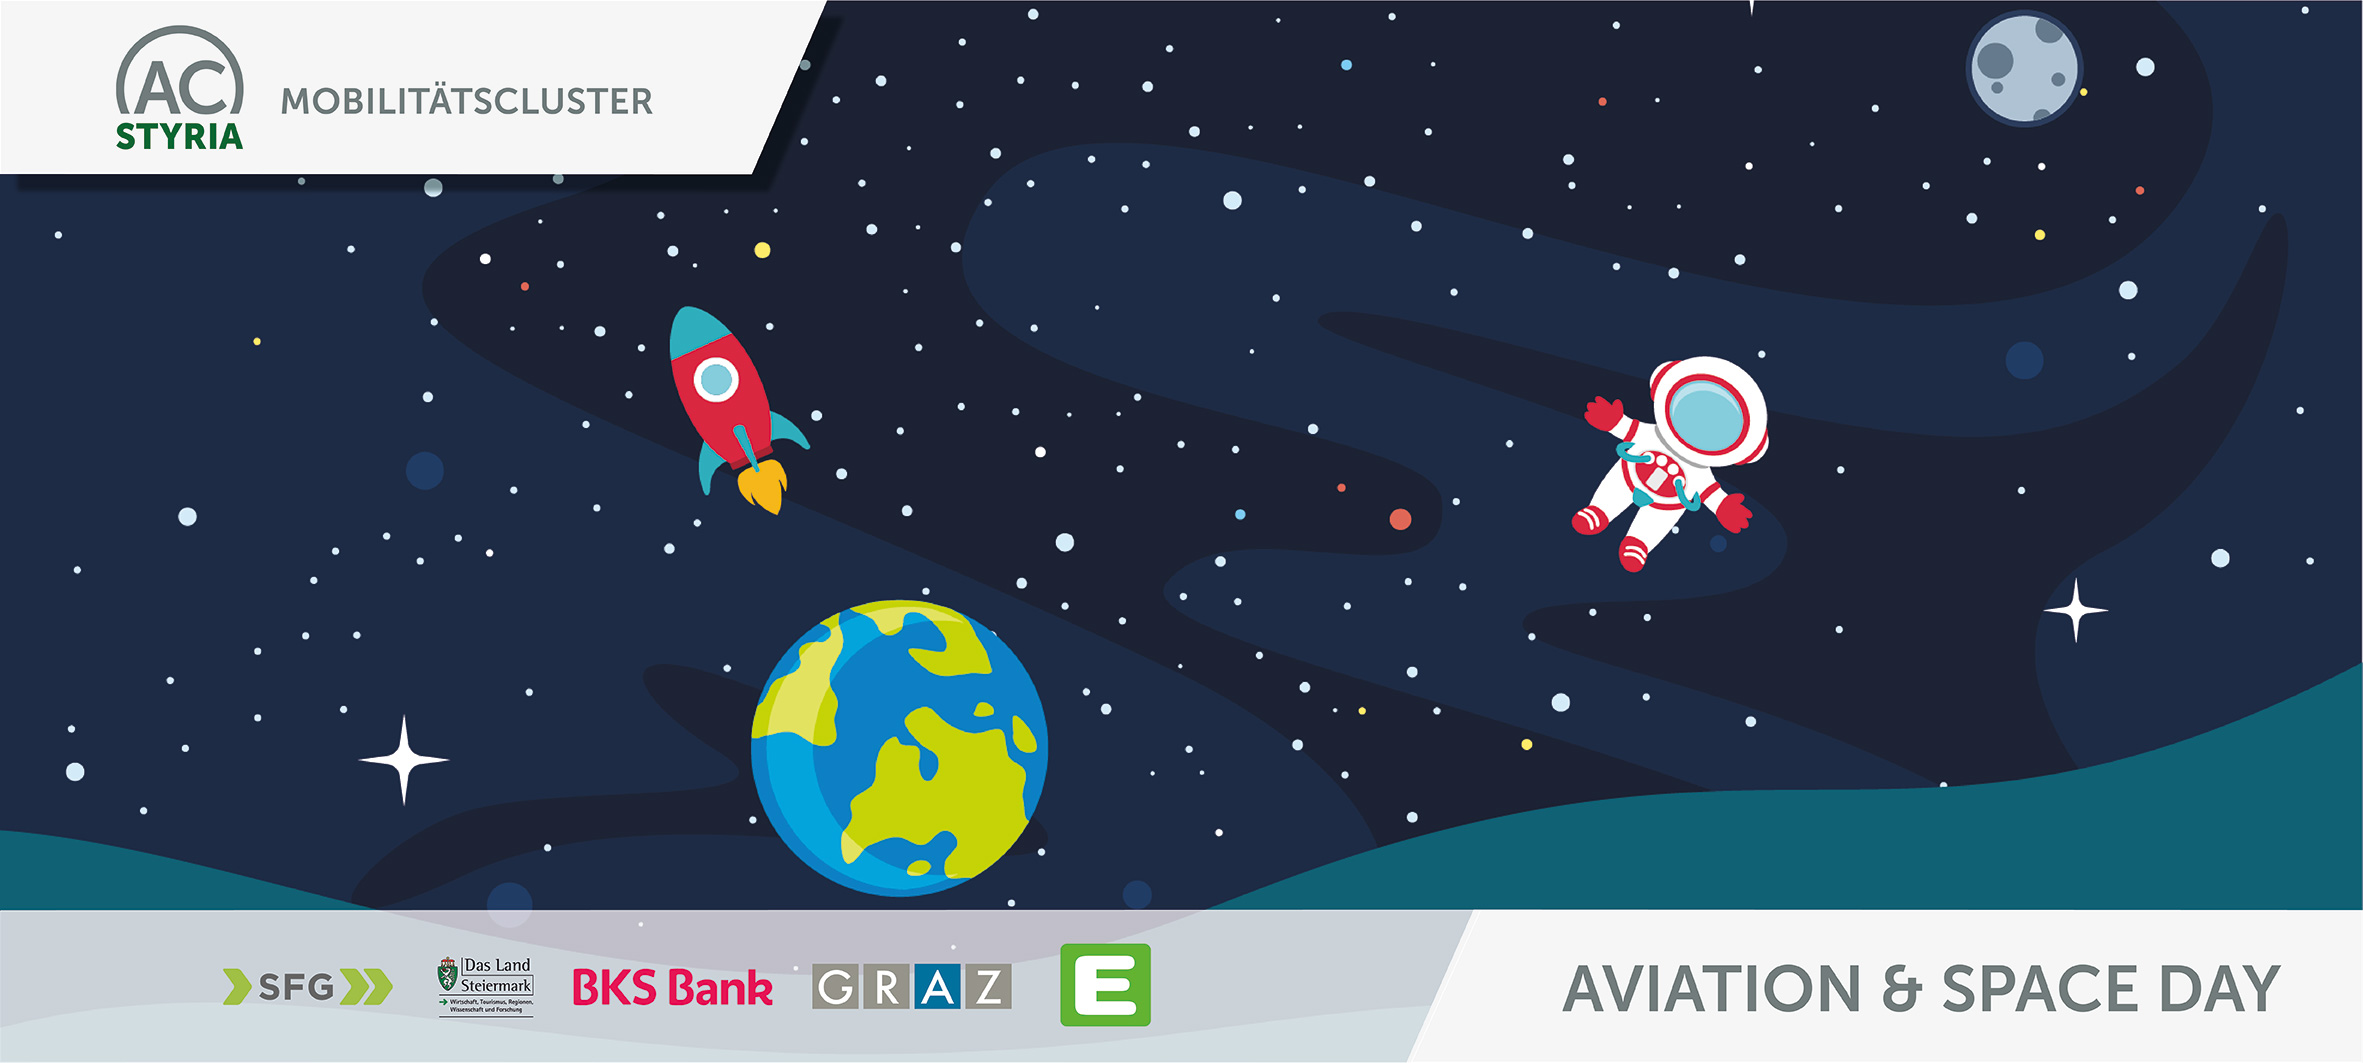 ACstyria Aviation & Space Day